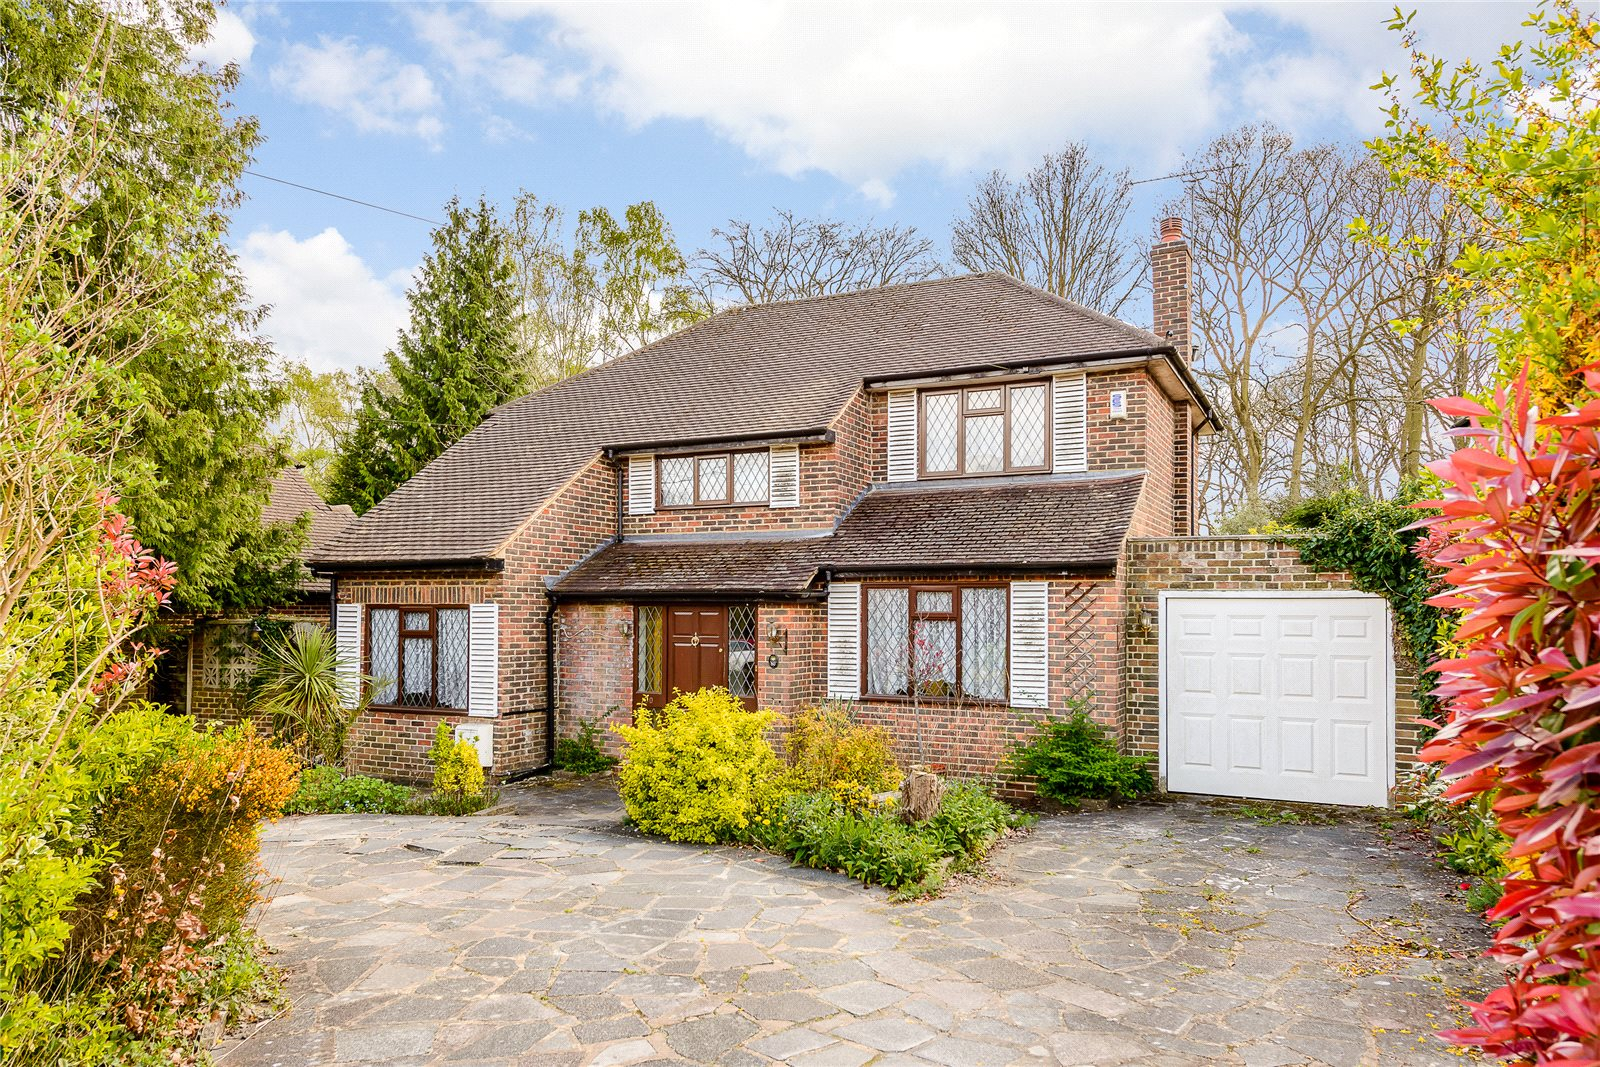 Maison unifamiliale pour l Vente à High Beeches, Gerrards Cross, Buckinghamshire, SL9 Gerrards Cross, Angleterre